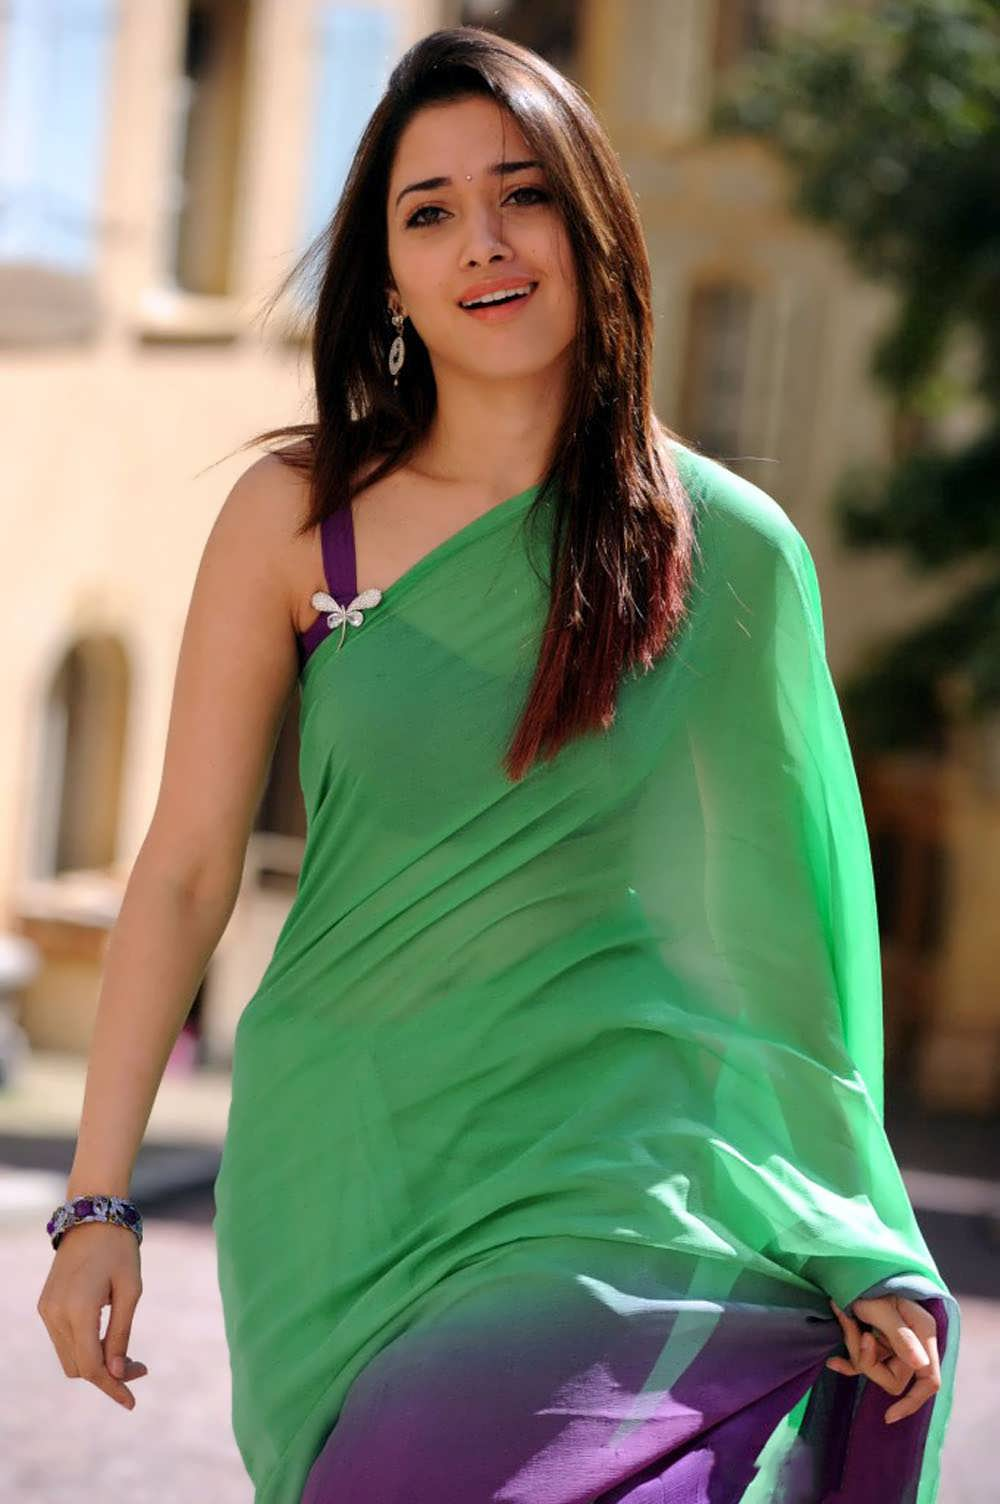 Latest Tamanna In Saree: Super About Bollywood: Tamanna Latest Hot Spicy Stills